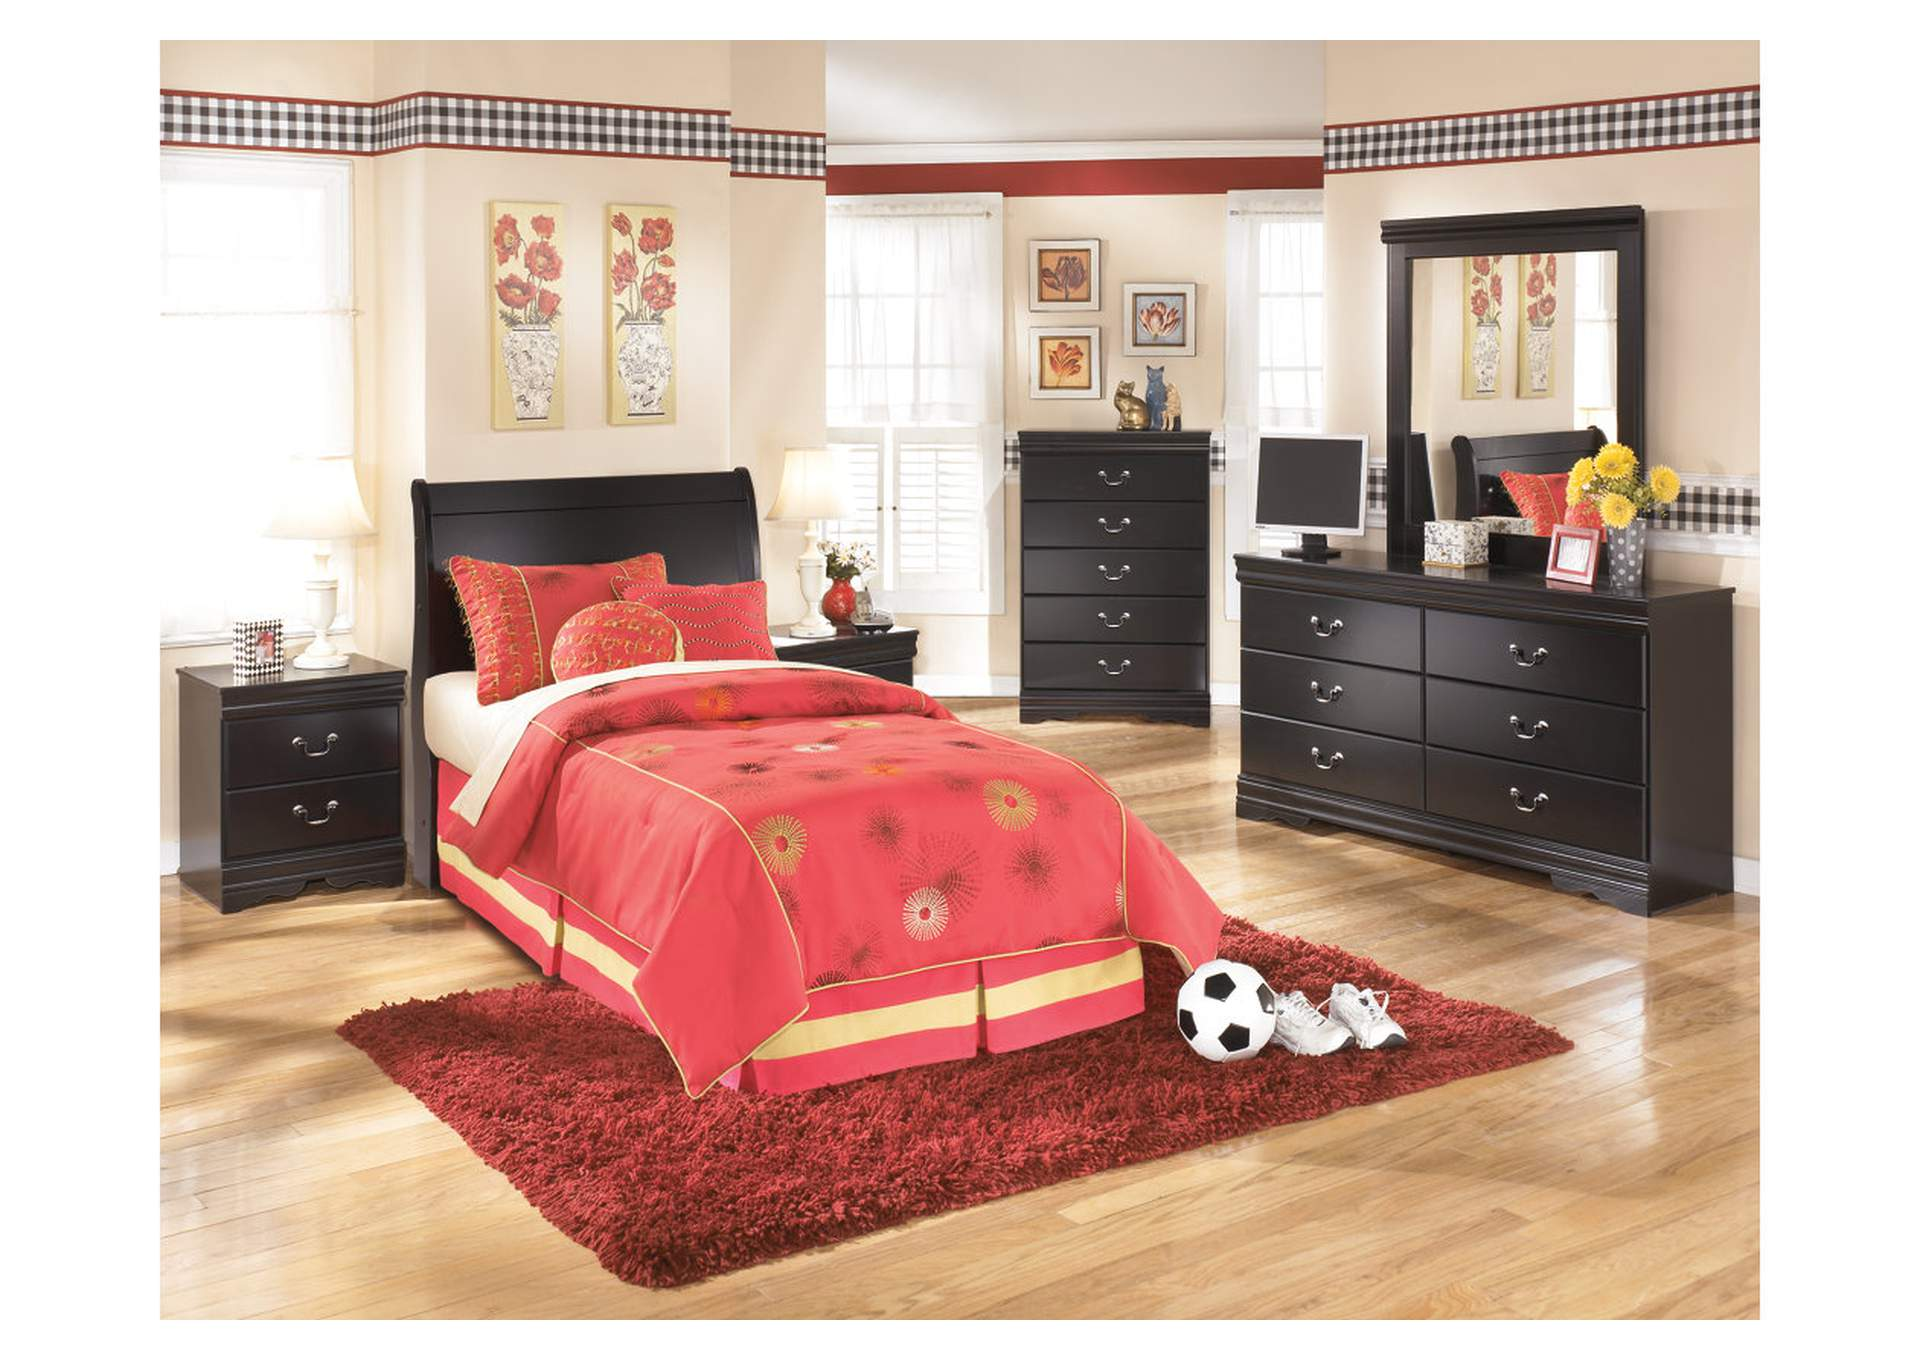 Huey Vineyard Full Headboard w/Dresser, Mirror & Drawer Chest,Signature Design By Ashley